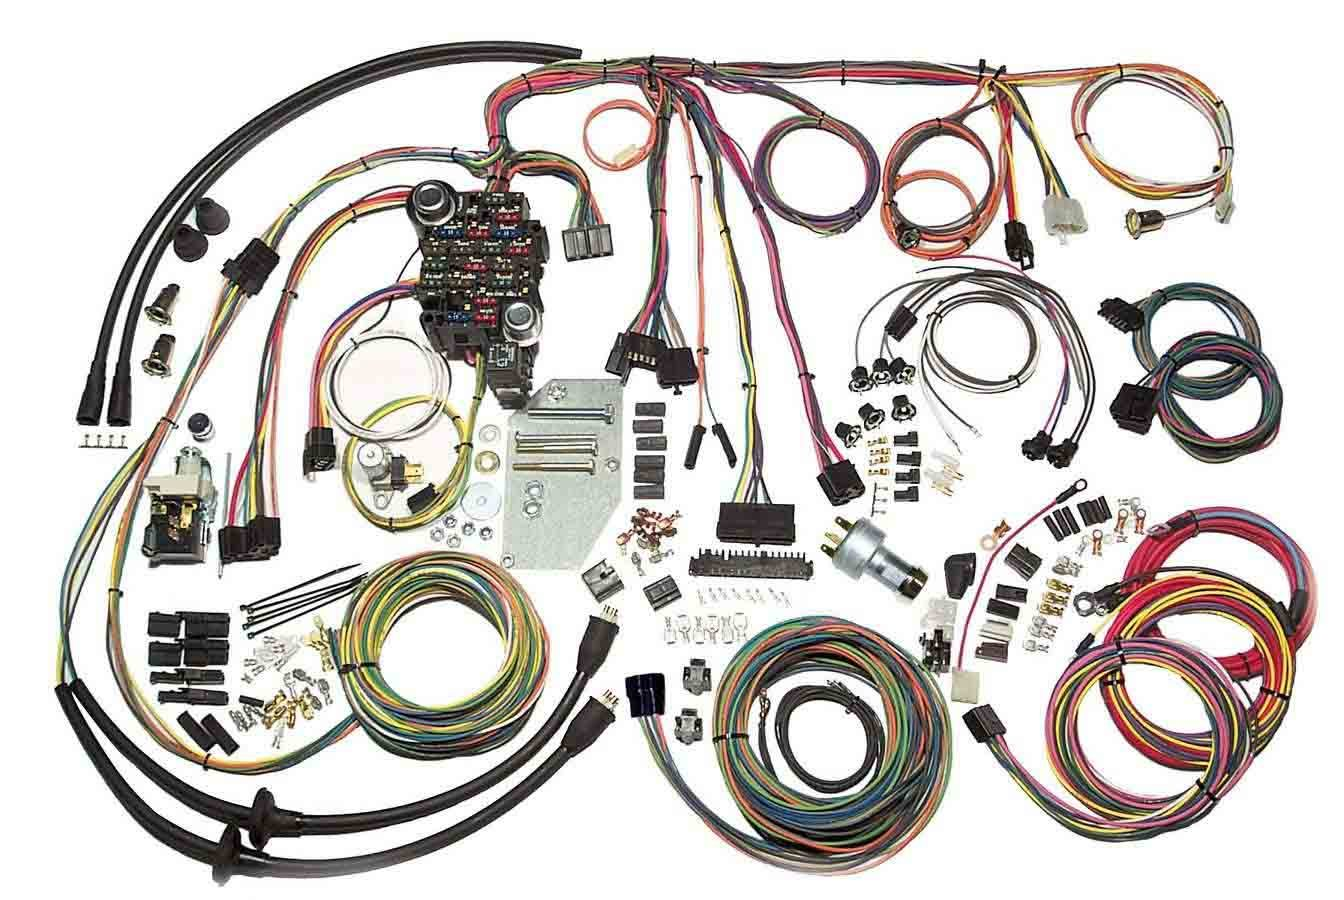 American Autowire 500423 Car Wiring Harness, Classic Update, Complete, Chevy Fullsize 1955-56, Kit